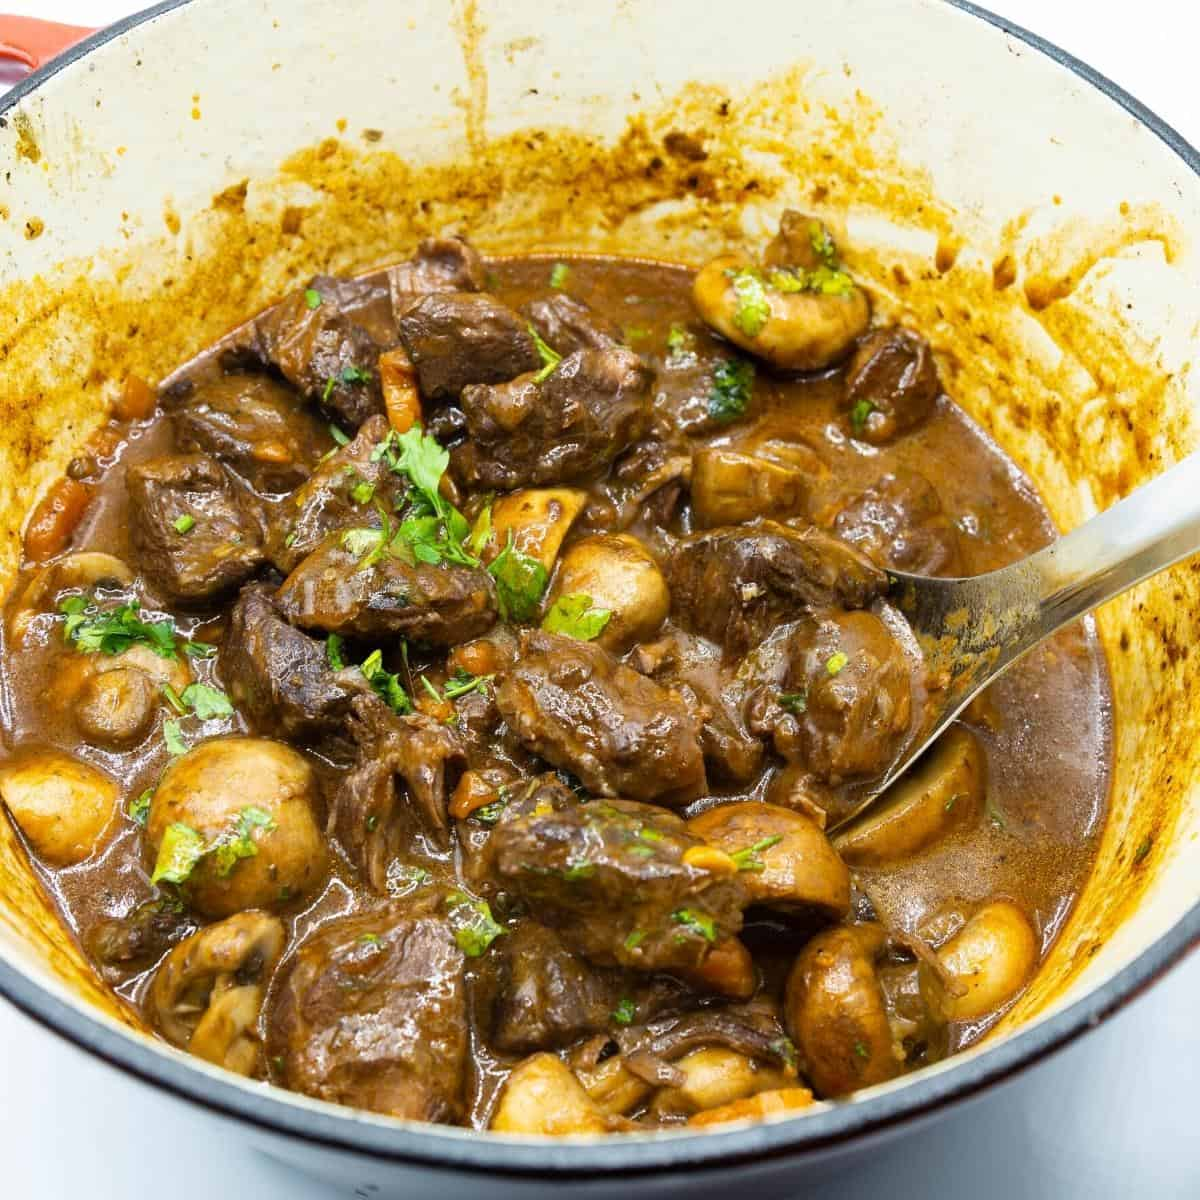 A Dutch oven with beef bourguignon.